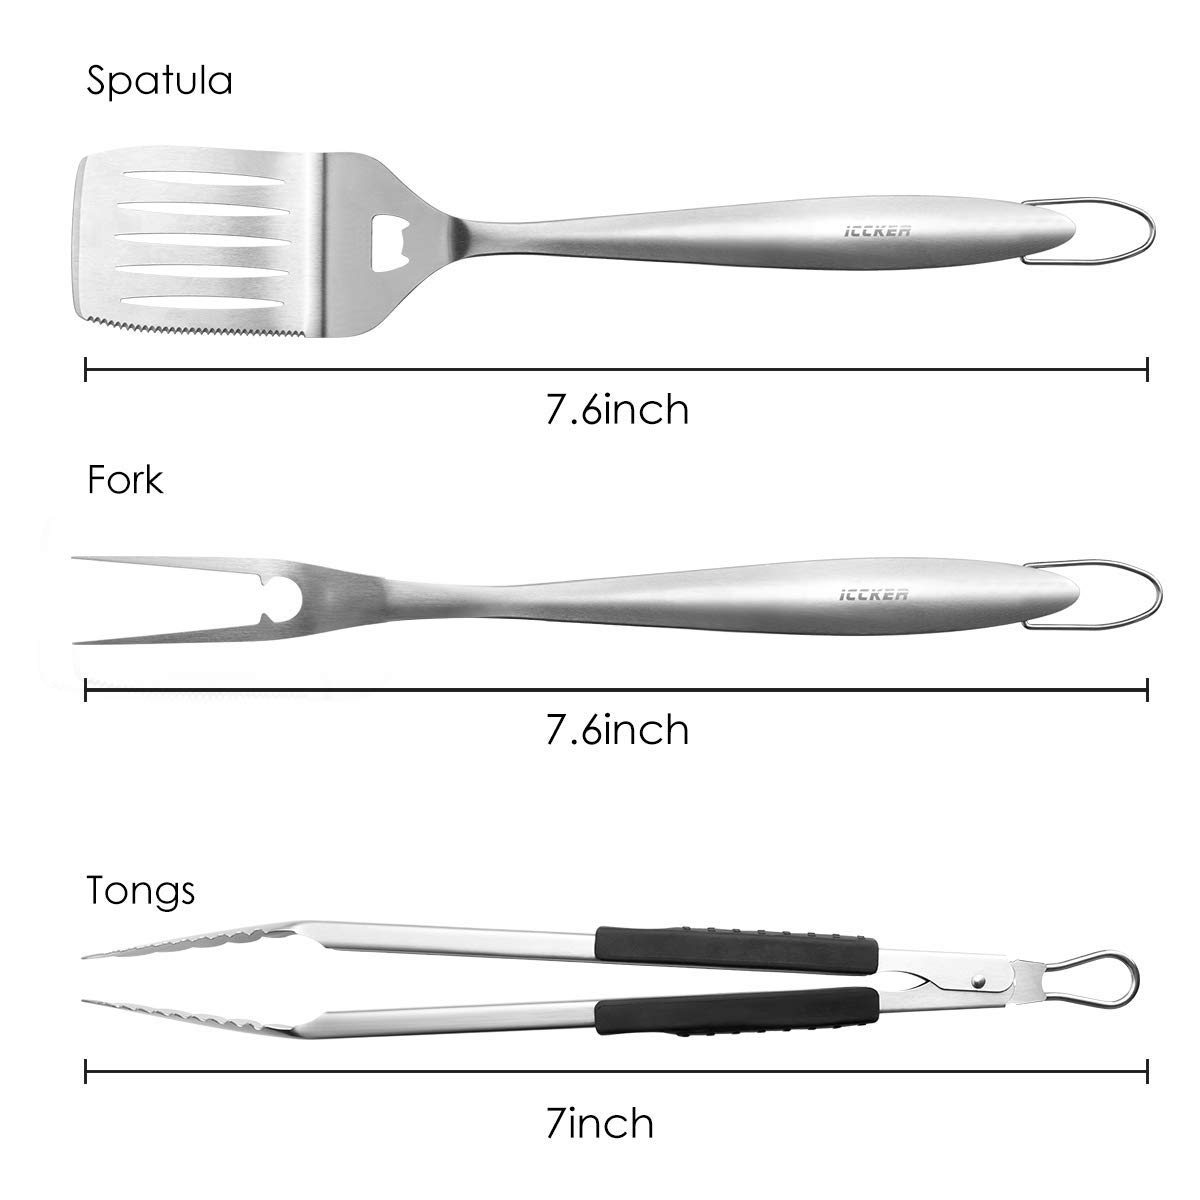 ICCKER BBQ Grilling Tools – Kitchen Tongs Spatula Fork – Best for Barbecue Grill, 18 Inch Extra Thick Stainless Steel Utensils Turner Accessories